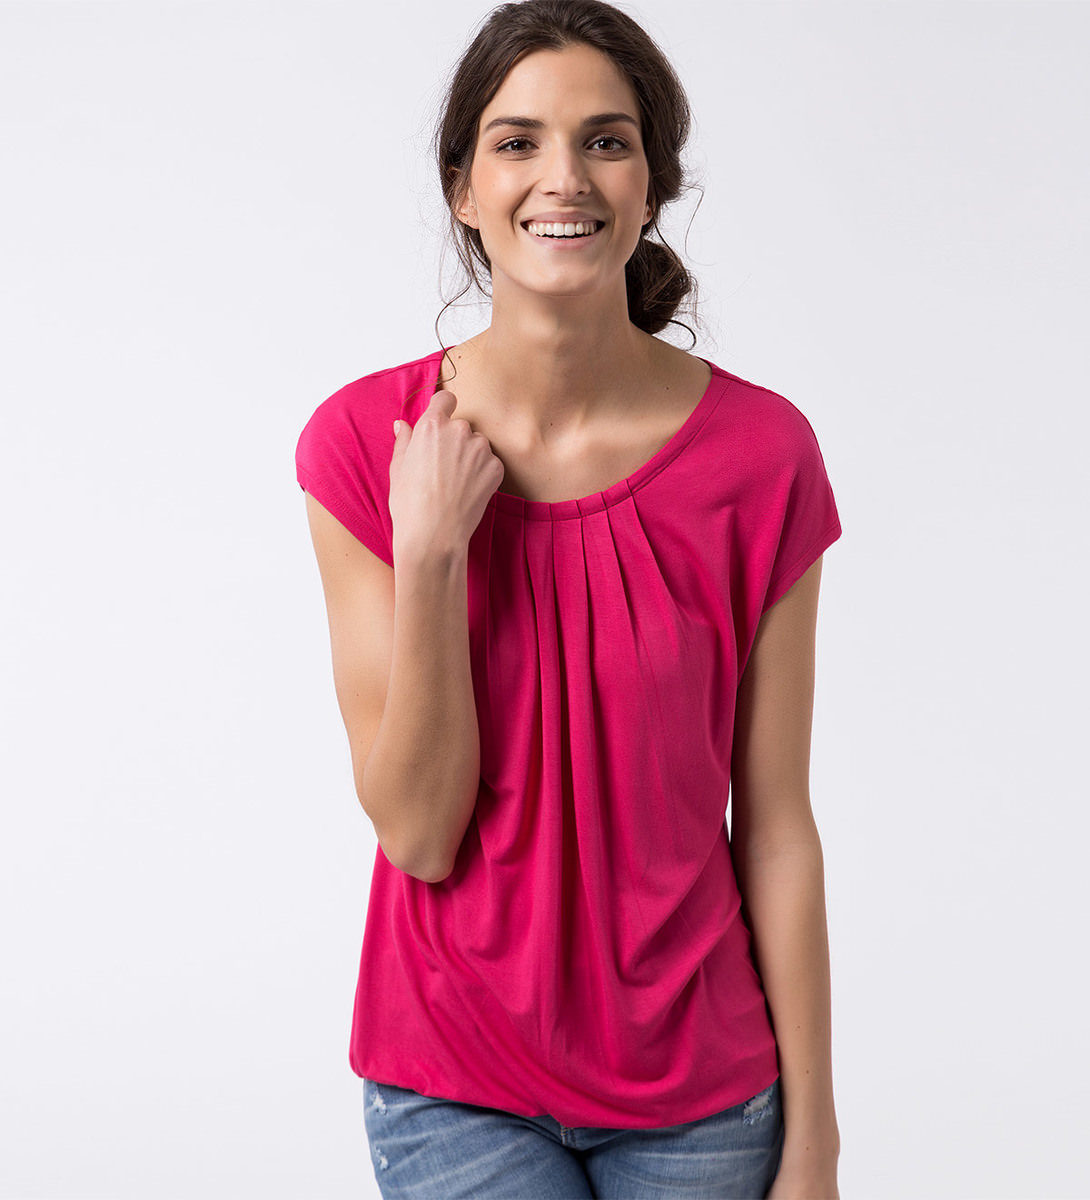 T-Shirt Rike in bright pink